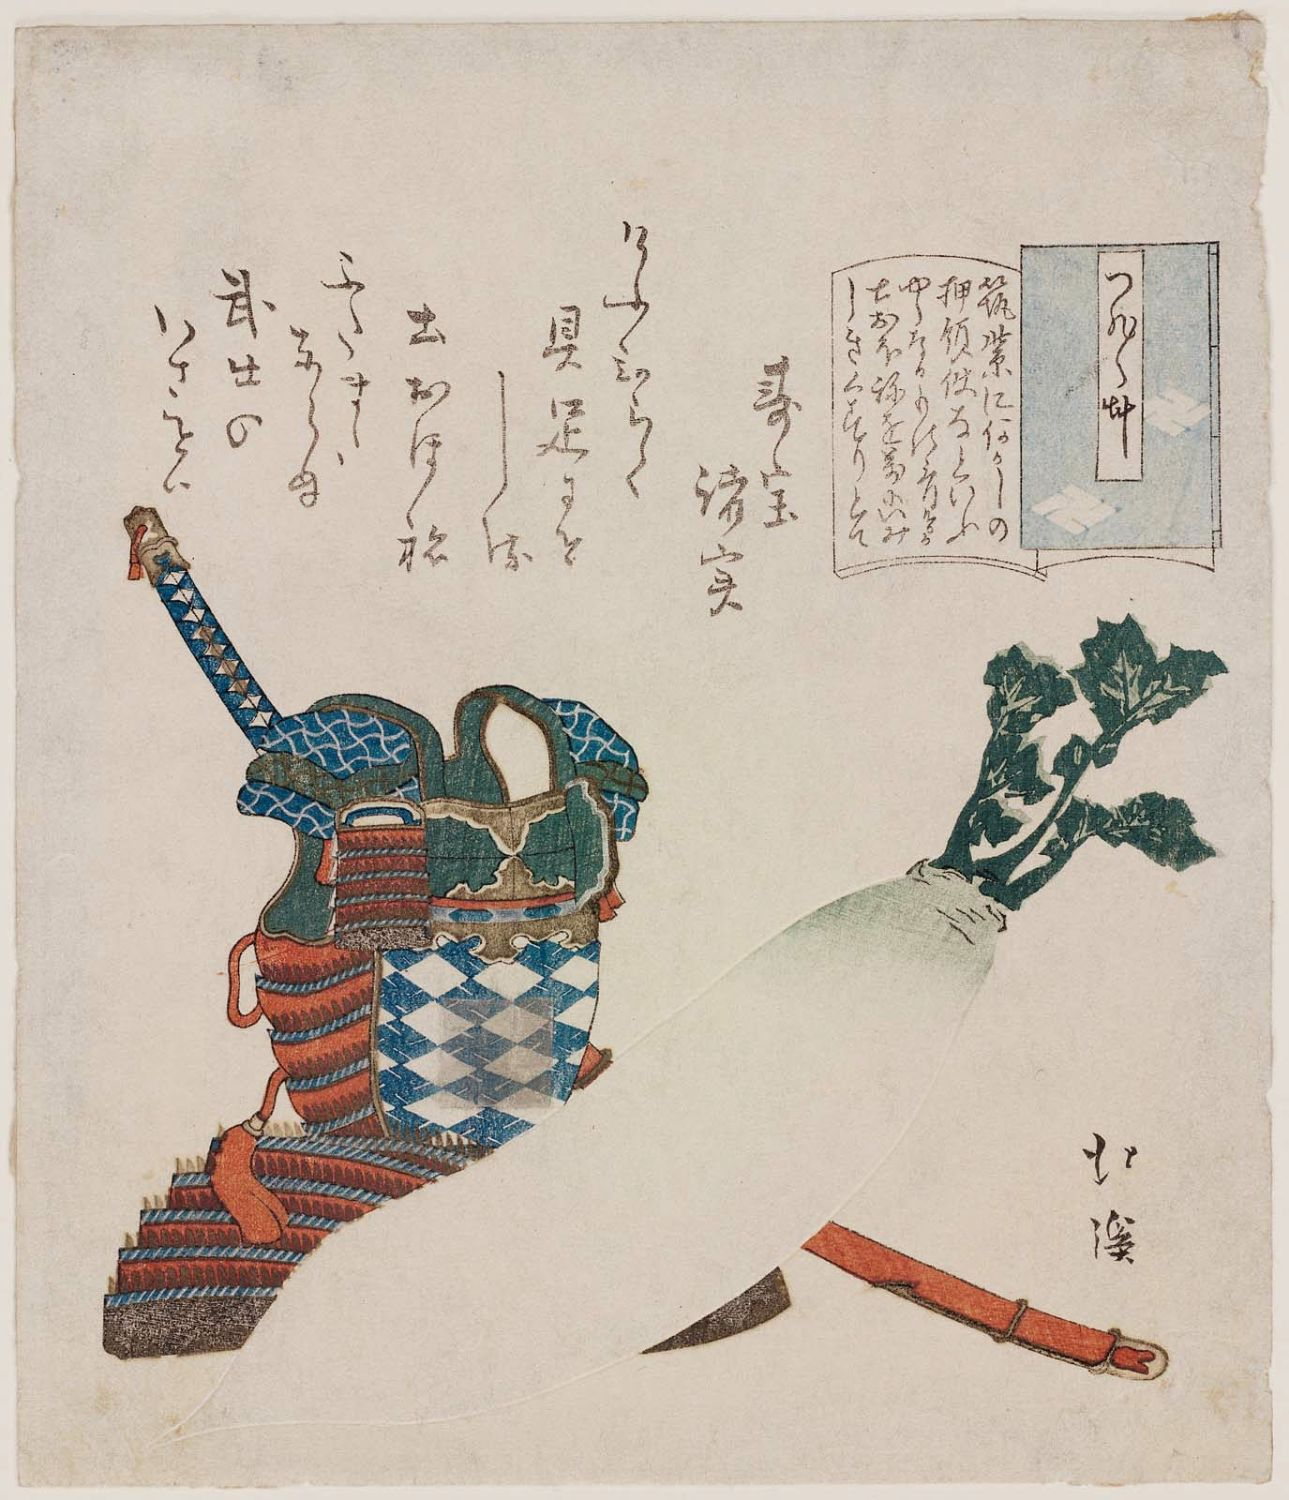 totoya hokkei armor sword and radish daikon from the series  totoya hokkei armor sword and radish daikon from the series essays in idleness tsurezure gusa museum of fine arts ukiyo e search